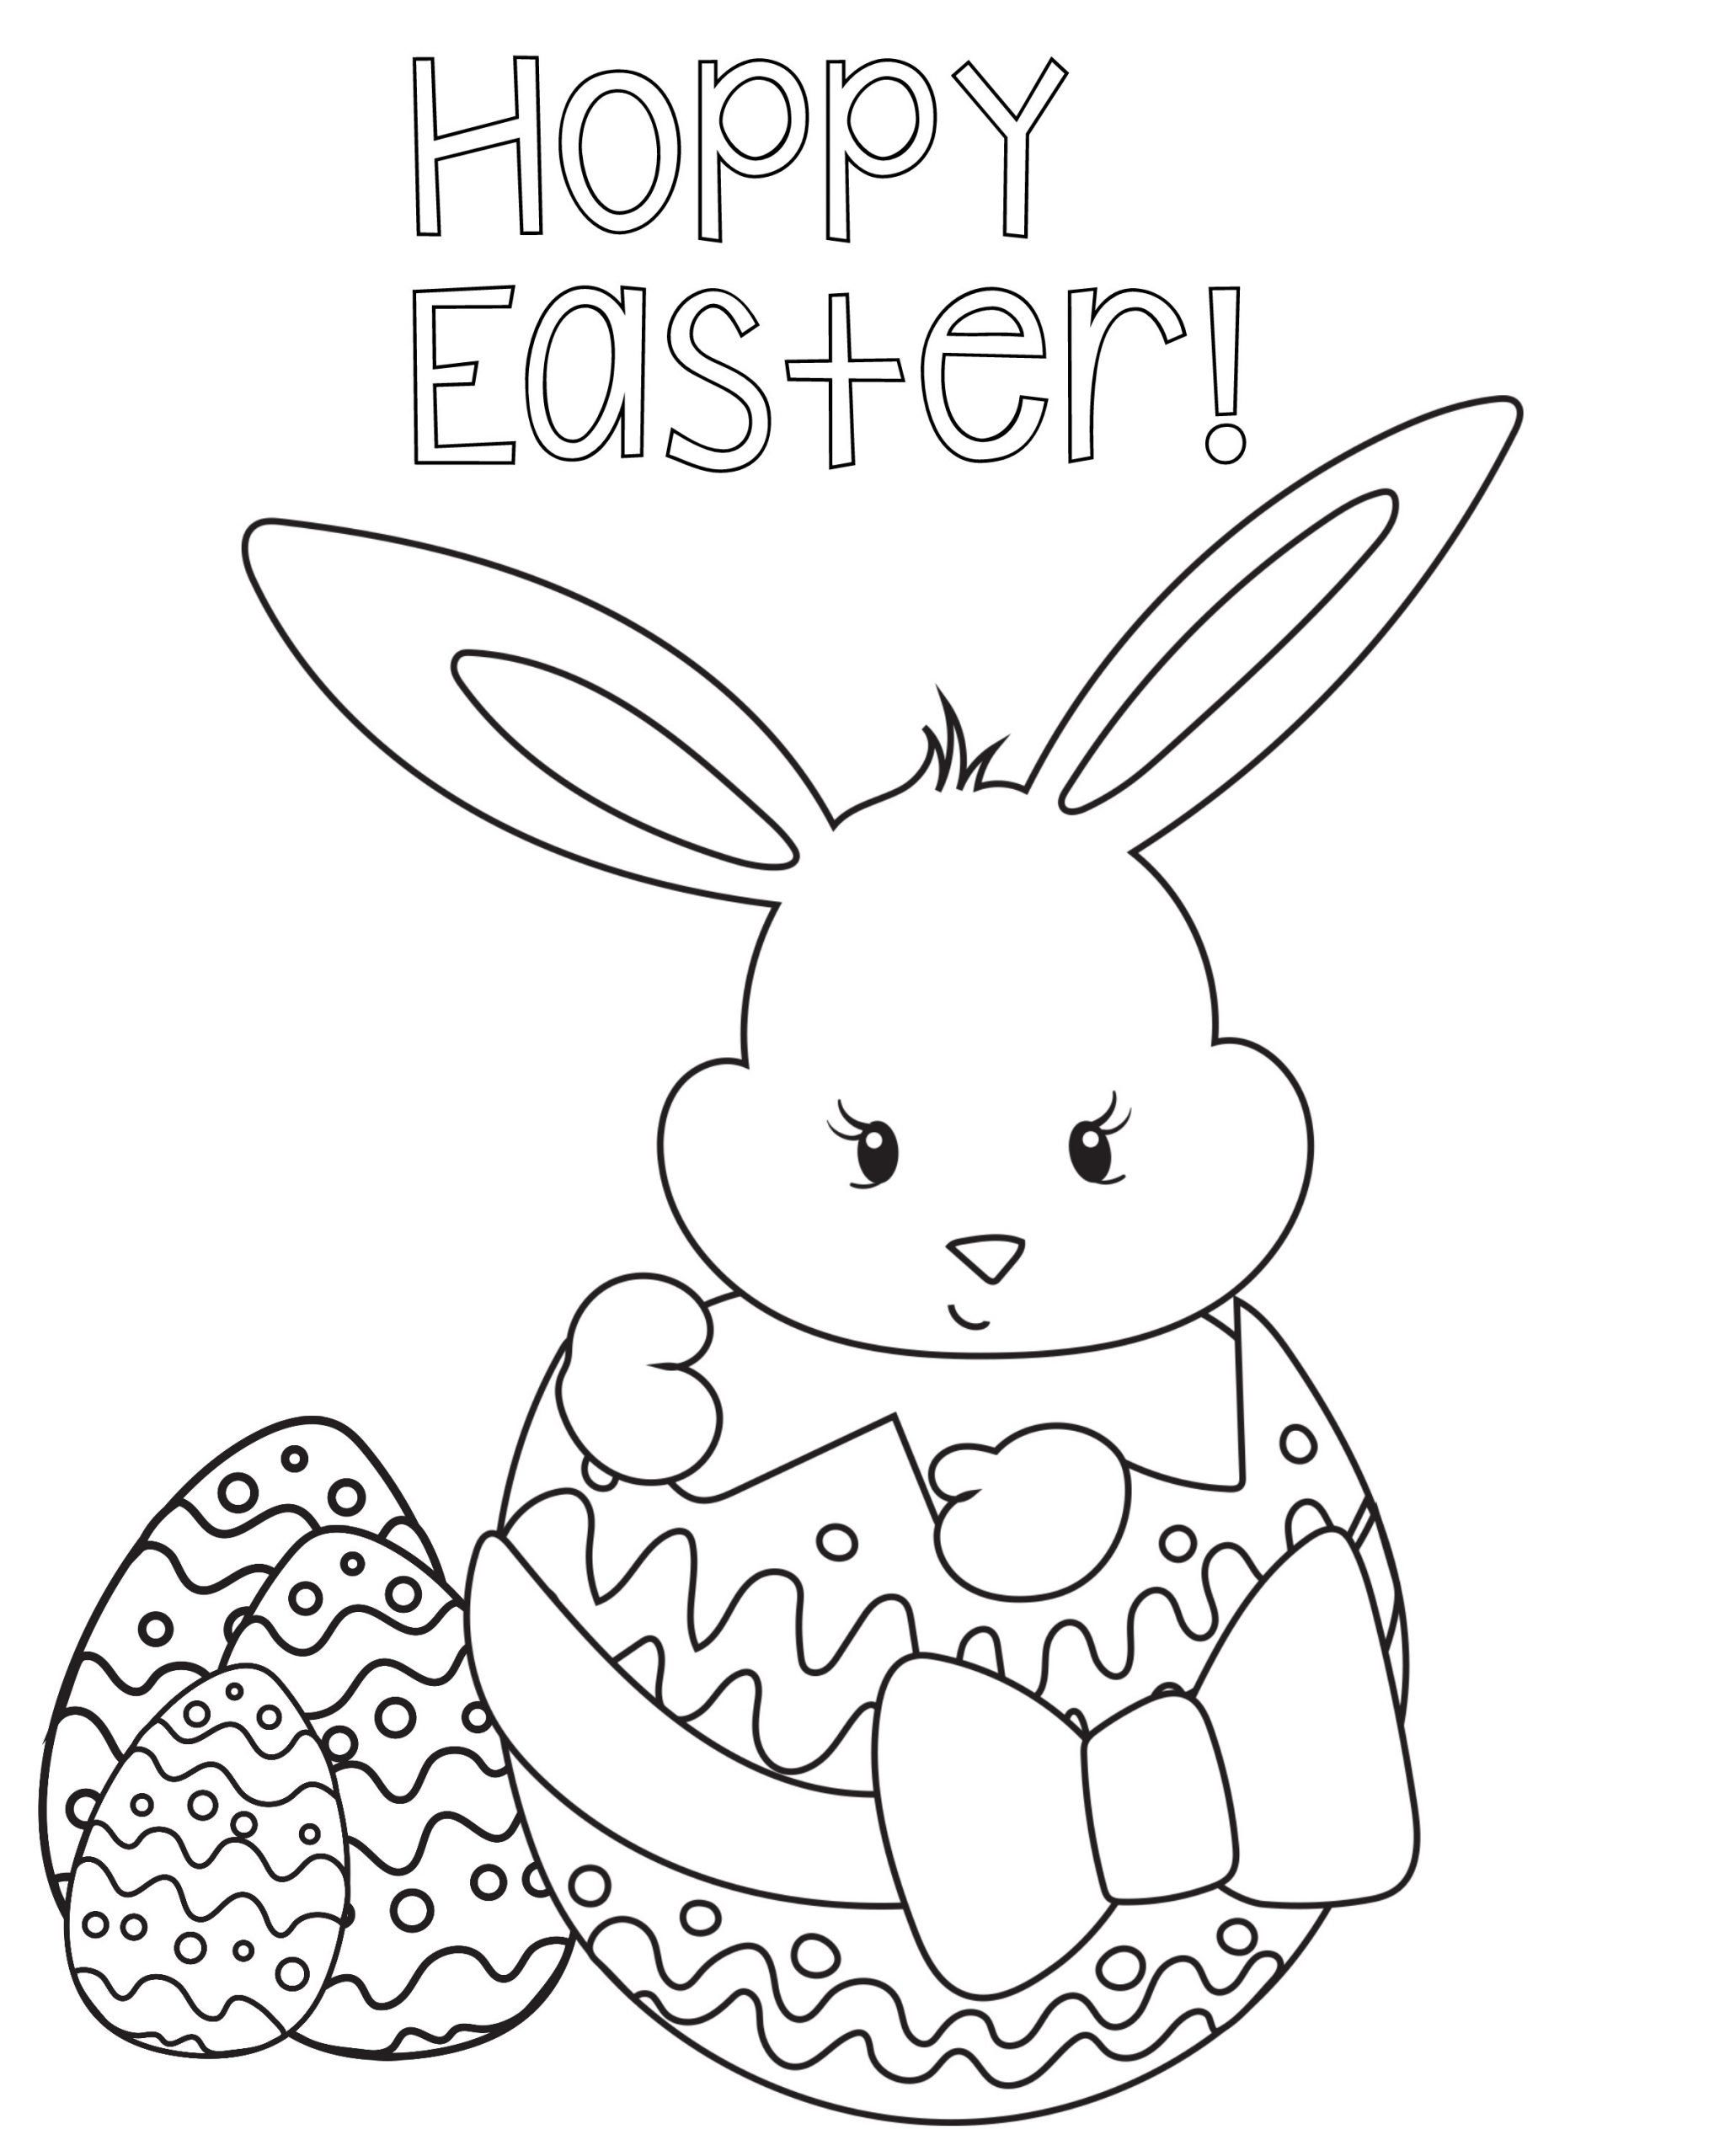 Coloring Pages To Print Out Easter Coloring Pages For Kids Crazy Little Project Free Easter Coloring Pages Easter Coloring Book Easter Coloring Pages Printable